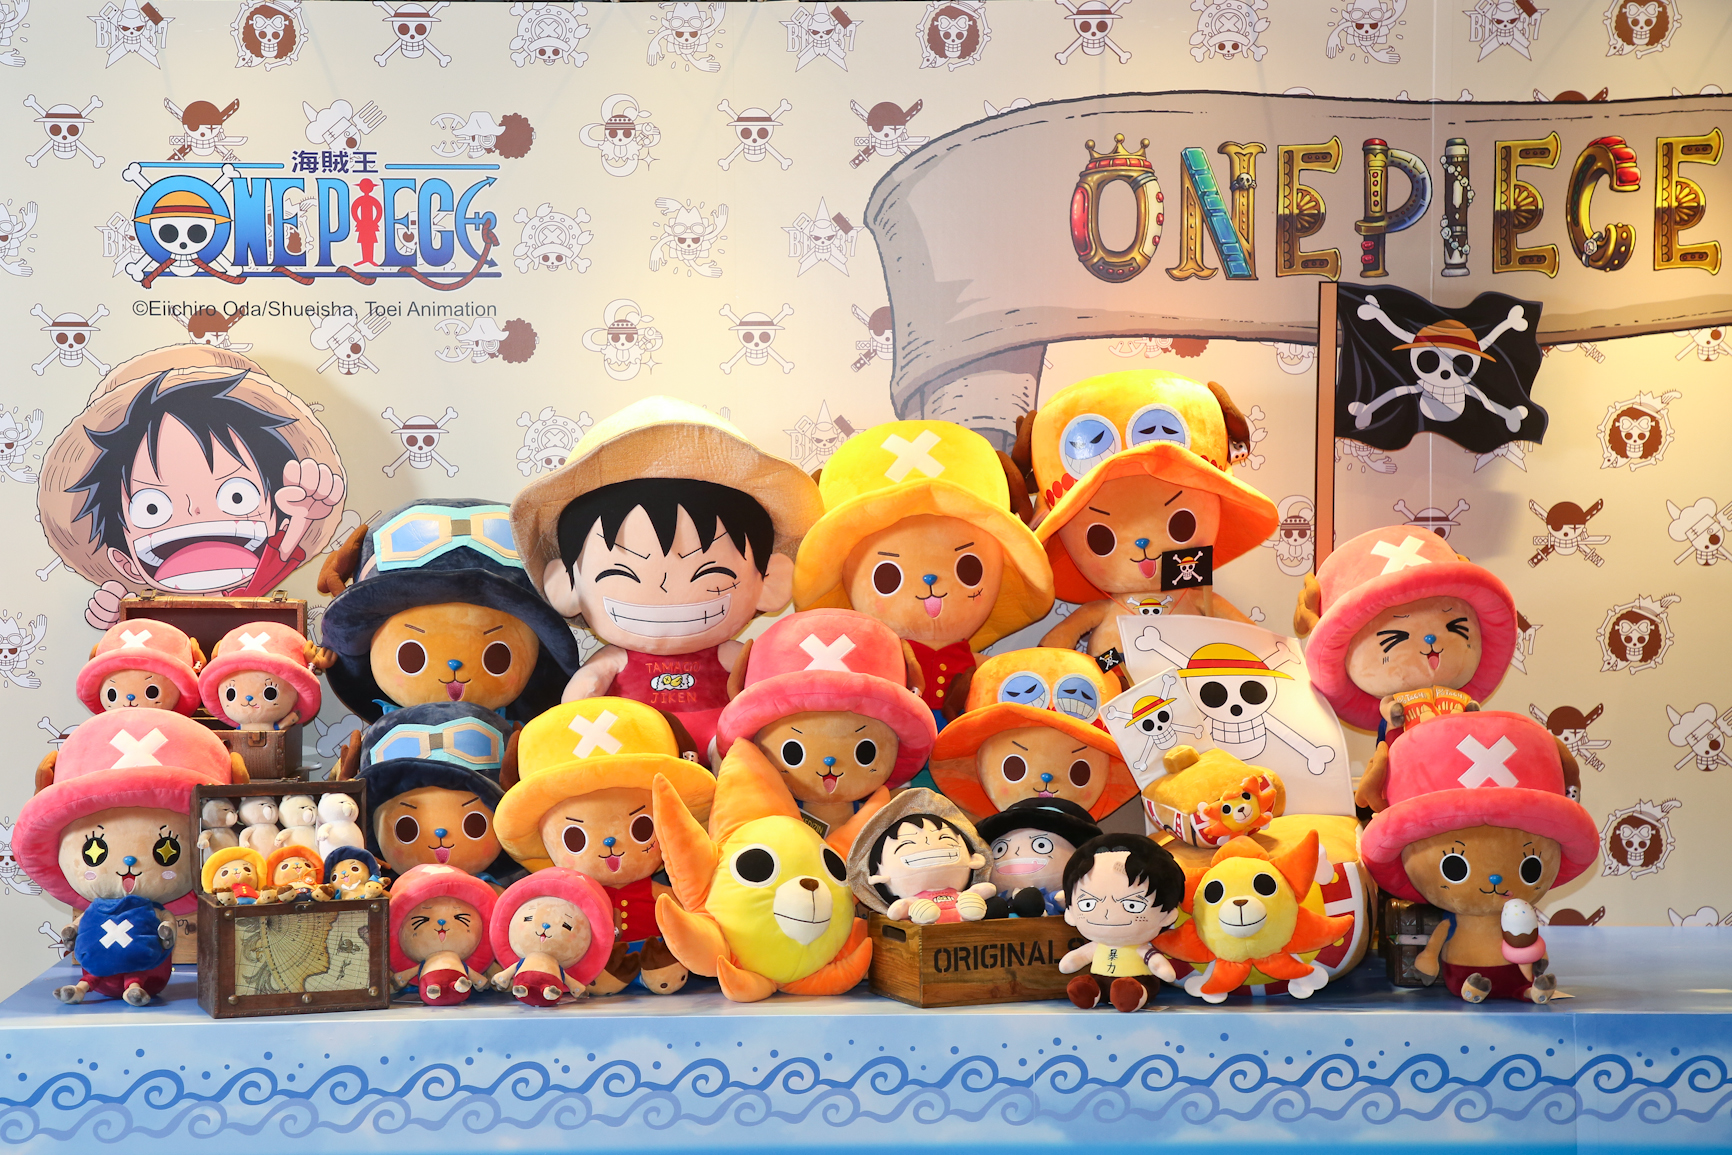 Don't Miss: Hong Kong's largest ever One Piece event happening at Ocean Park Hong Kong - Alvinology